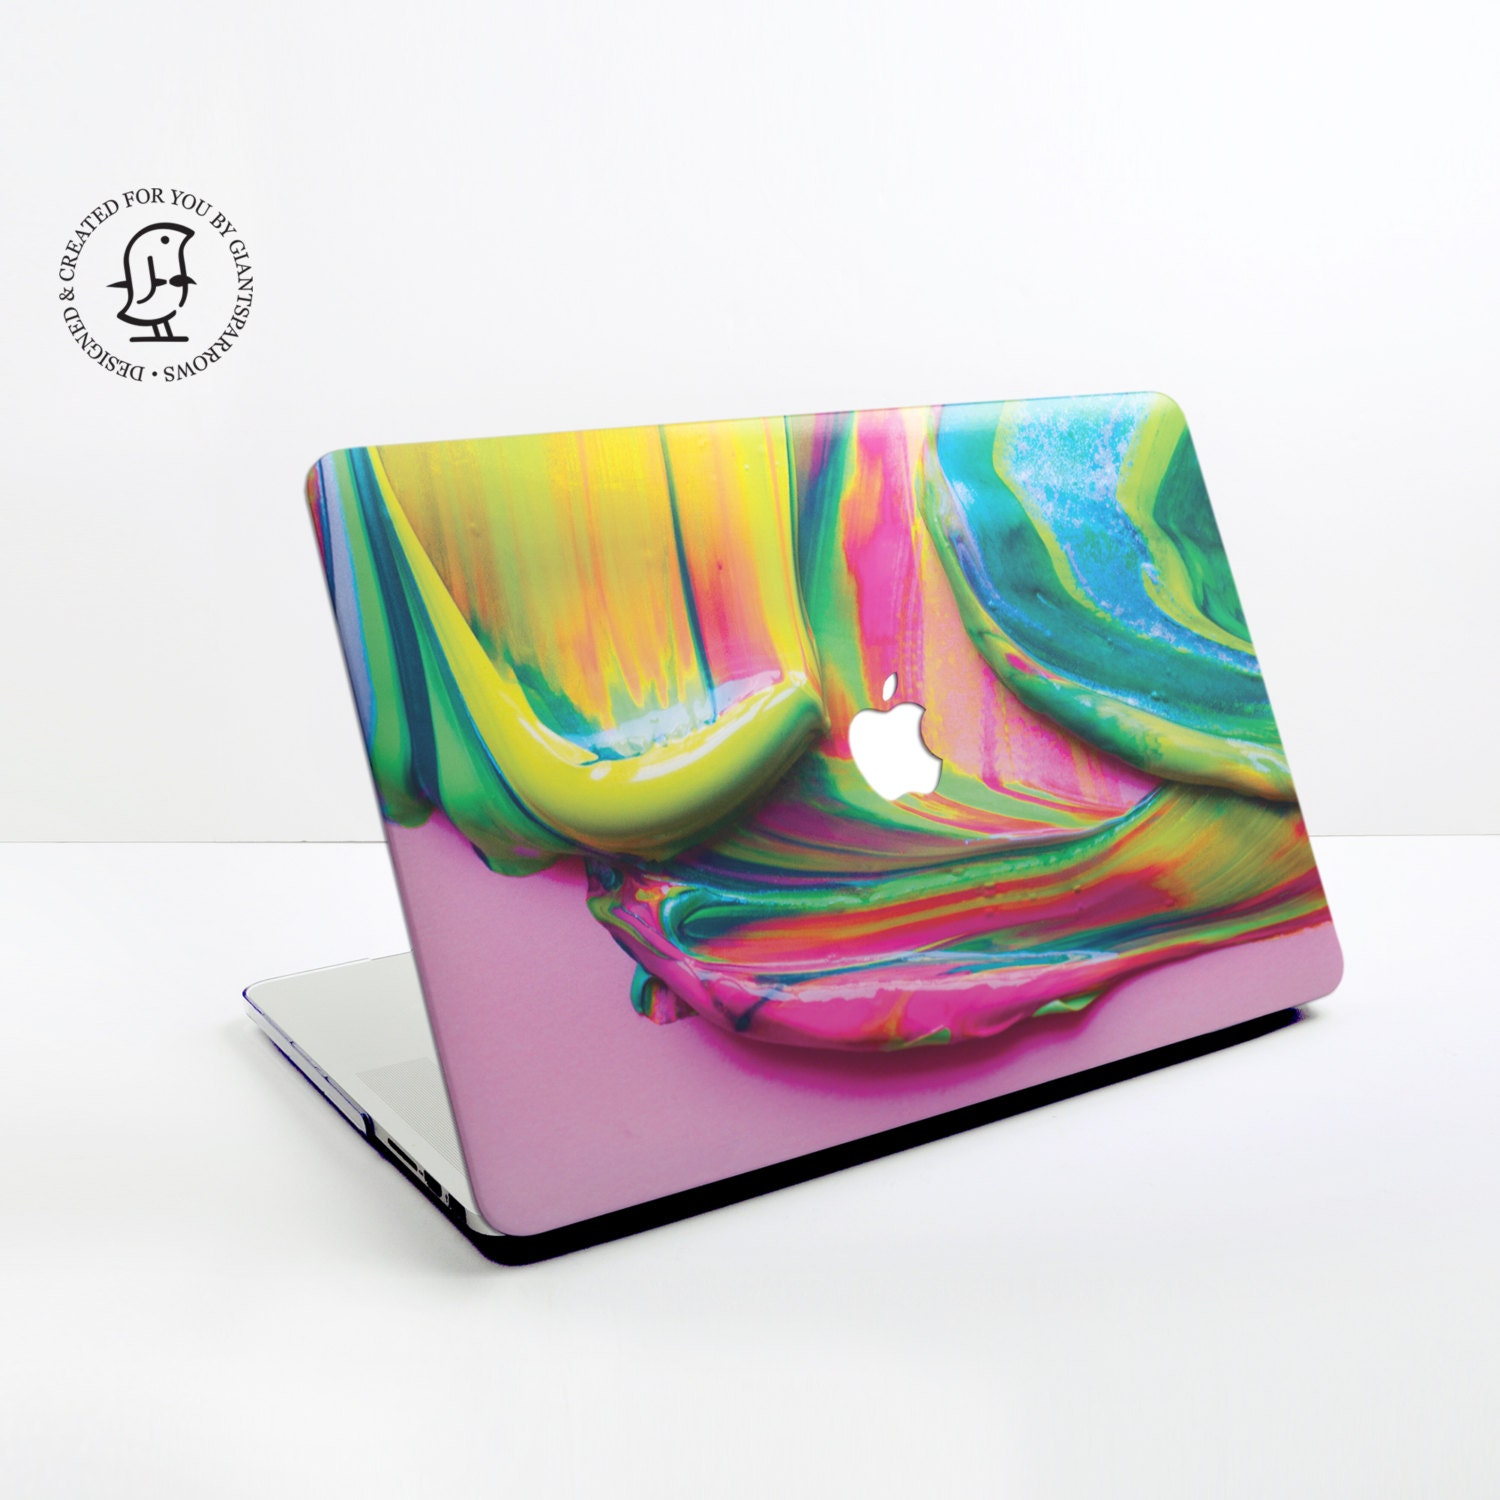 Paint Swirl Design with Mix of Yellow Pink  Green Paints  MacBook Hard Protective Case for MacBook Pro Air Air Retina Pro Retina 2016